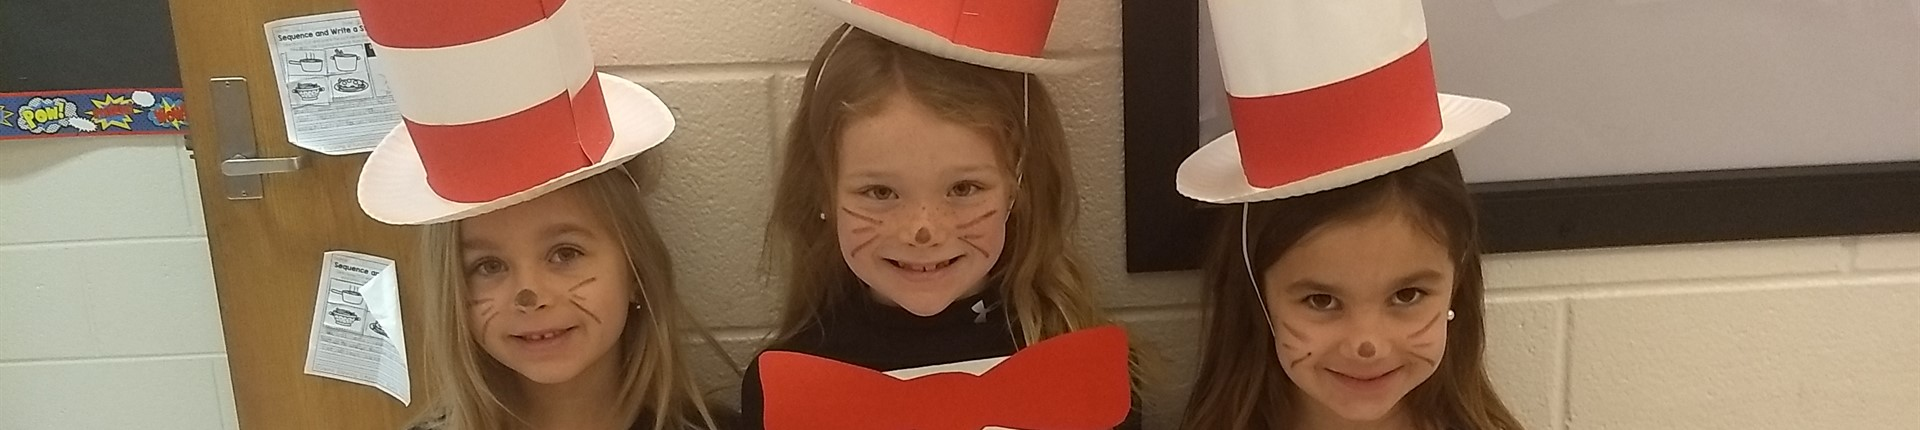 Dr Suess Celebration